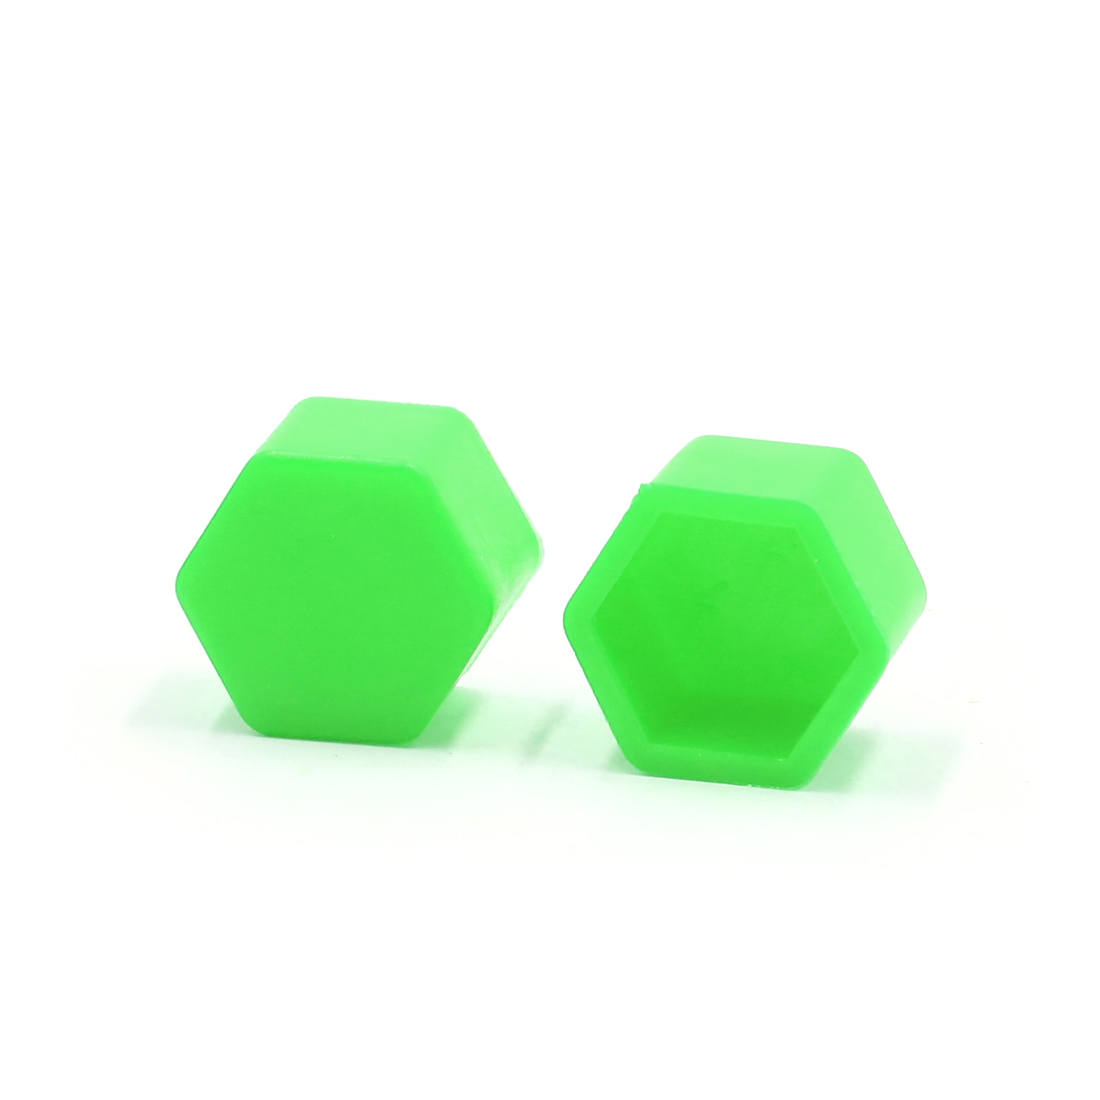 20 Pcs 21 x 20mm Green Luminous Car Wheel Tyre Hub Screw Bolt Nut Cap Covers - image 2 de 3